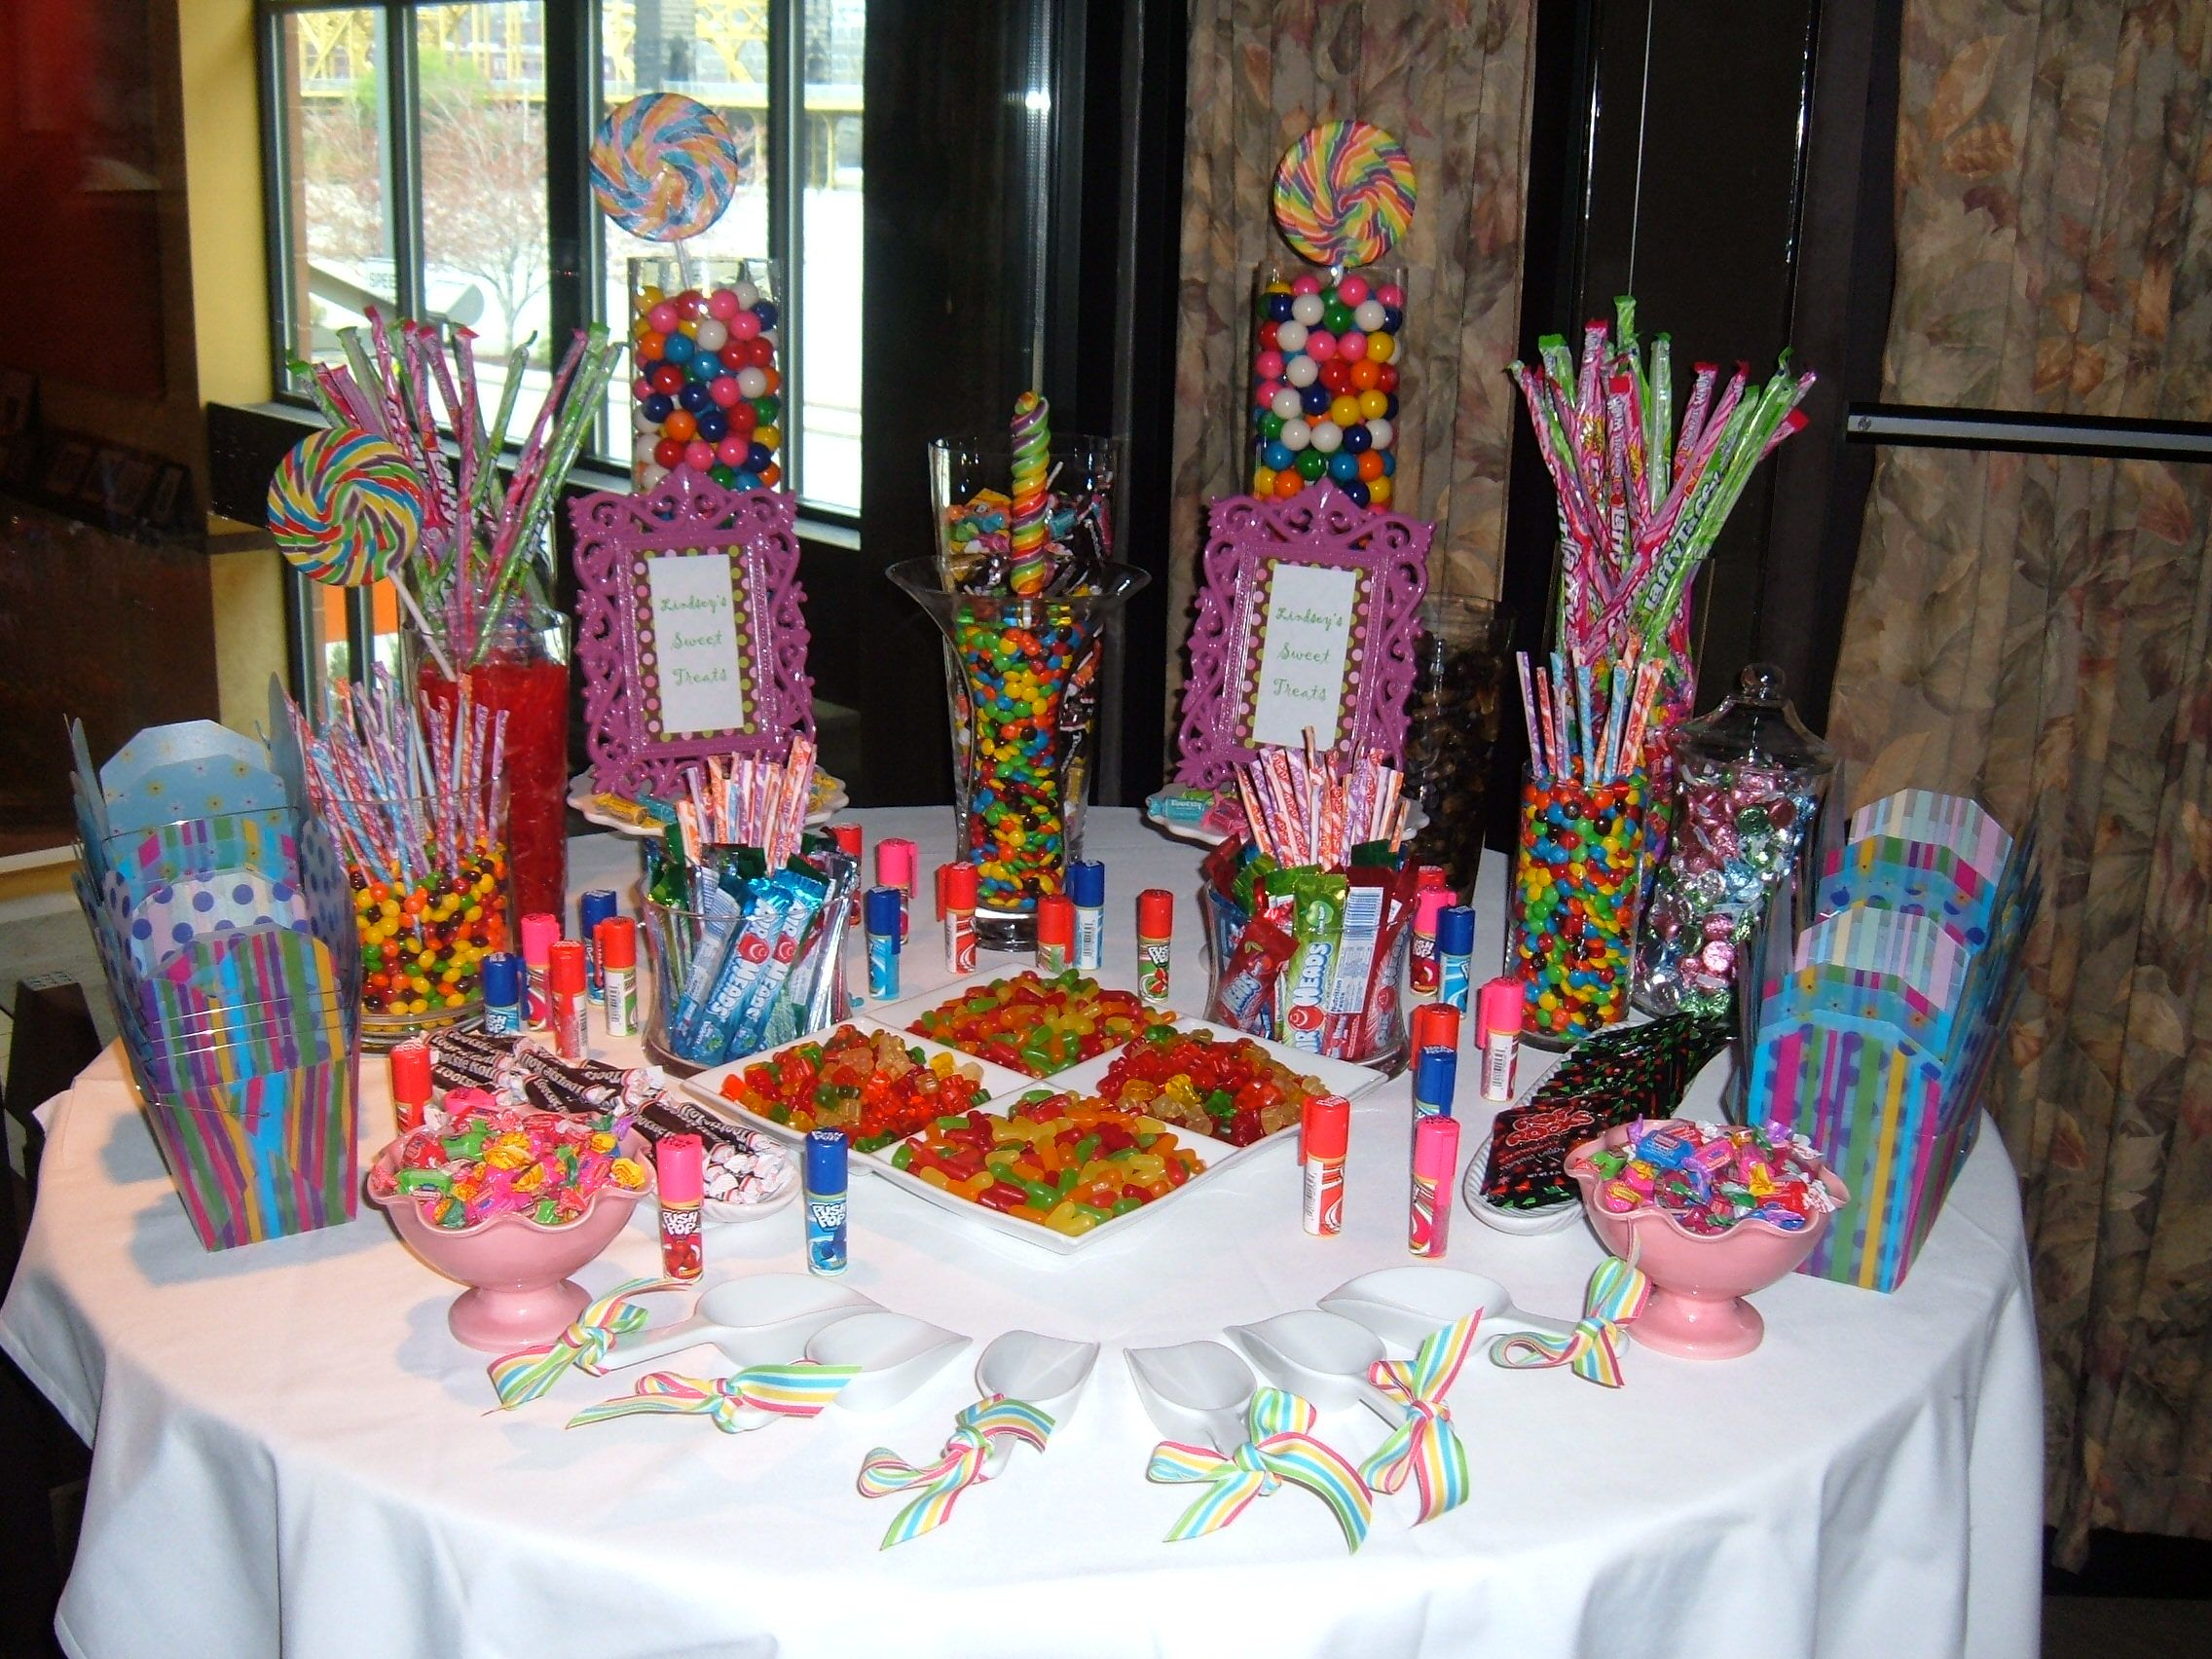 Pin By Sorcha Blake On Party Ideas Diy Candy Table Sweet 16 Birthday Party Diy Birthday Decorations